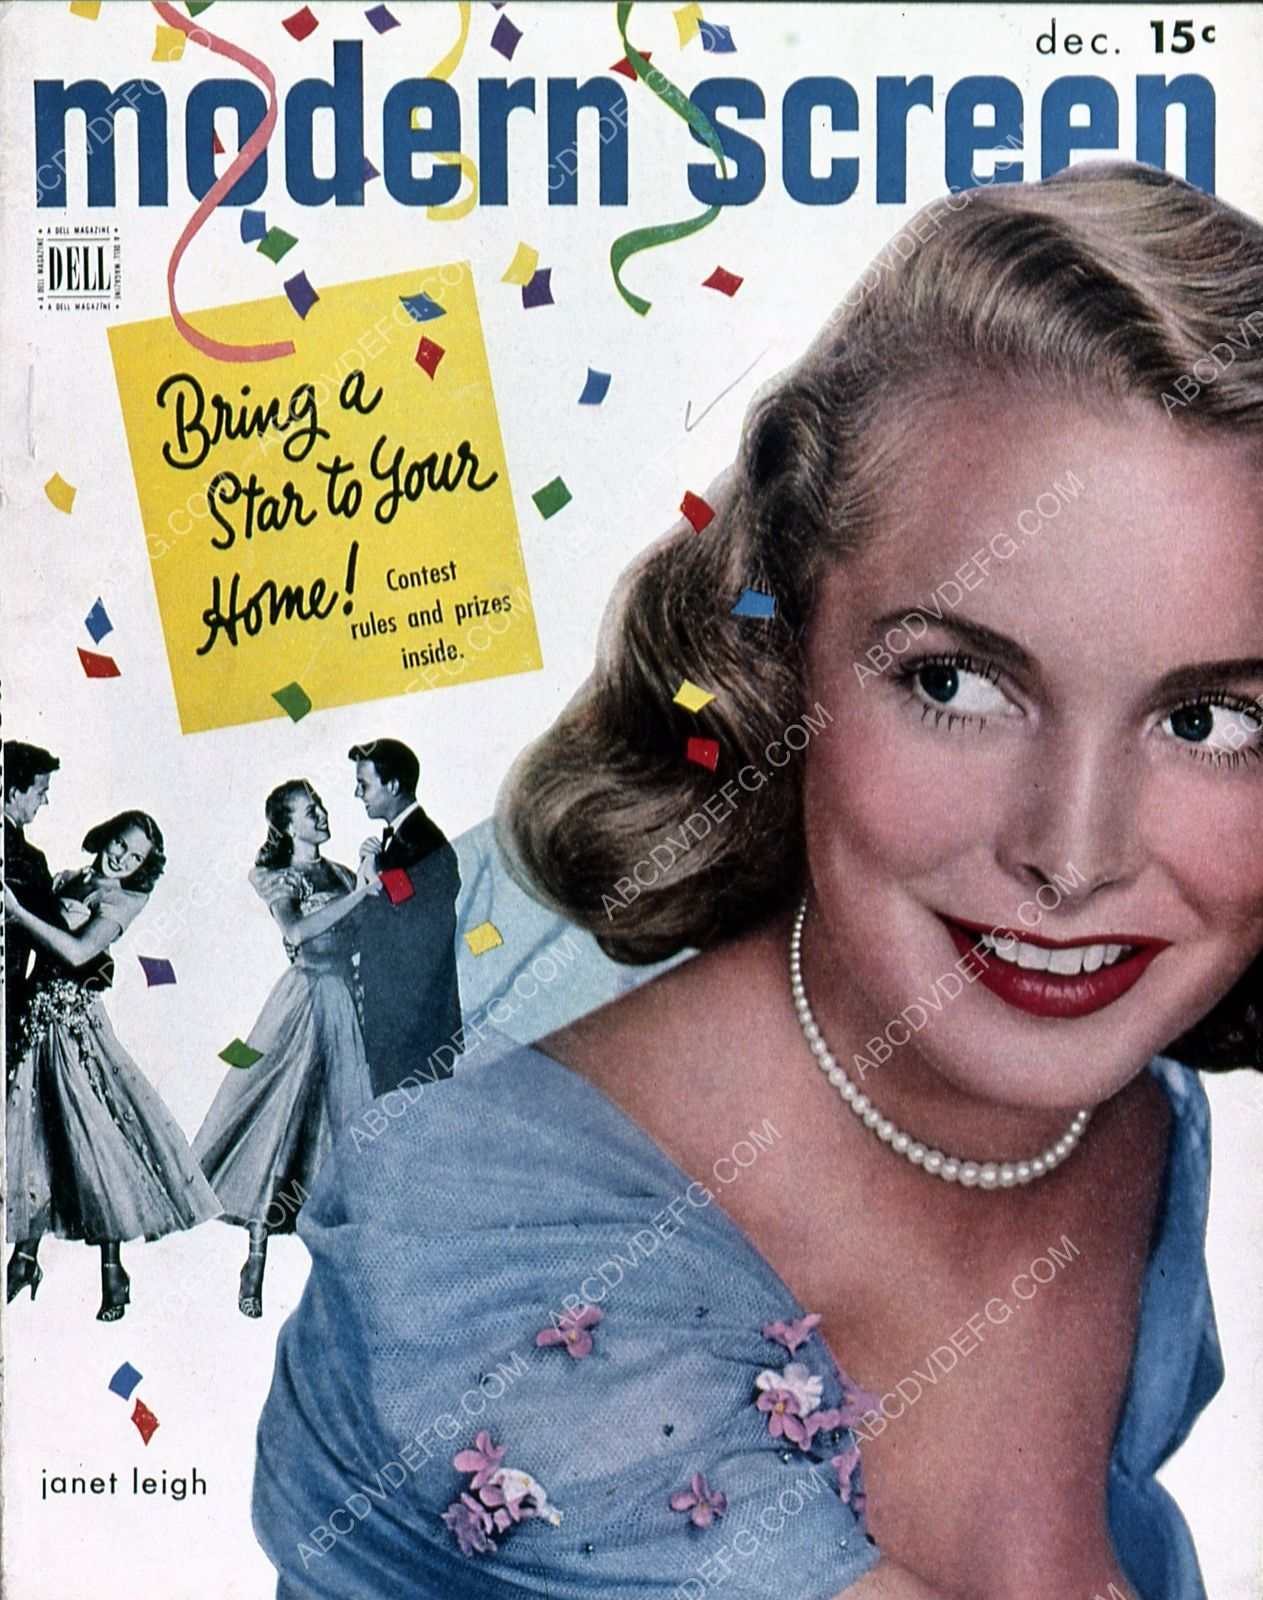 Janet Leigh Modern Screen magazine cover 35m-5904